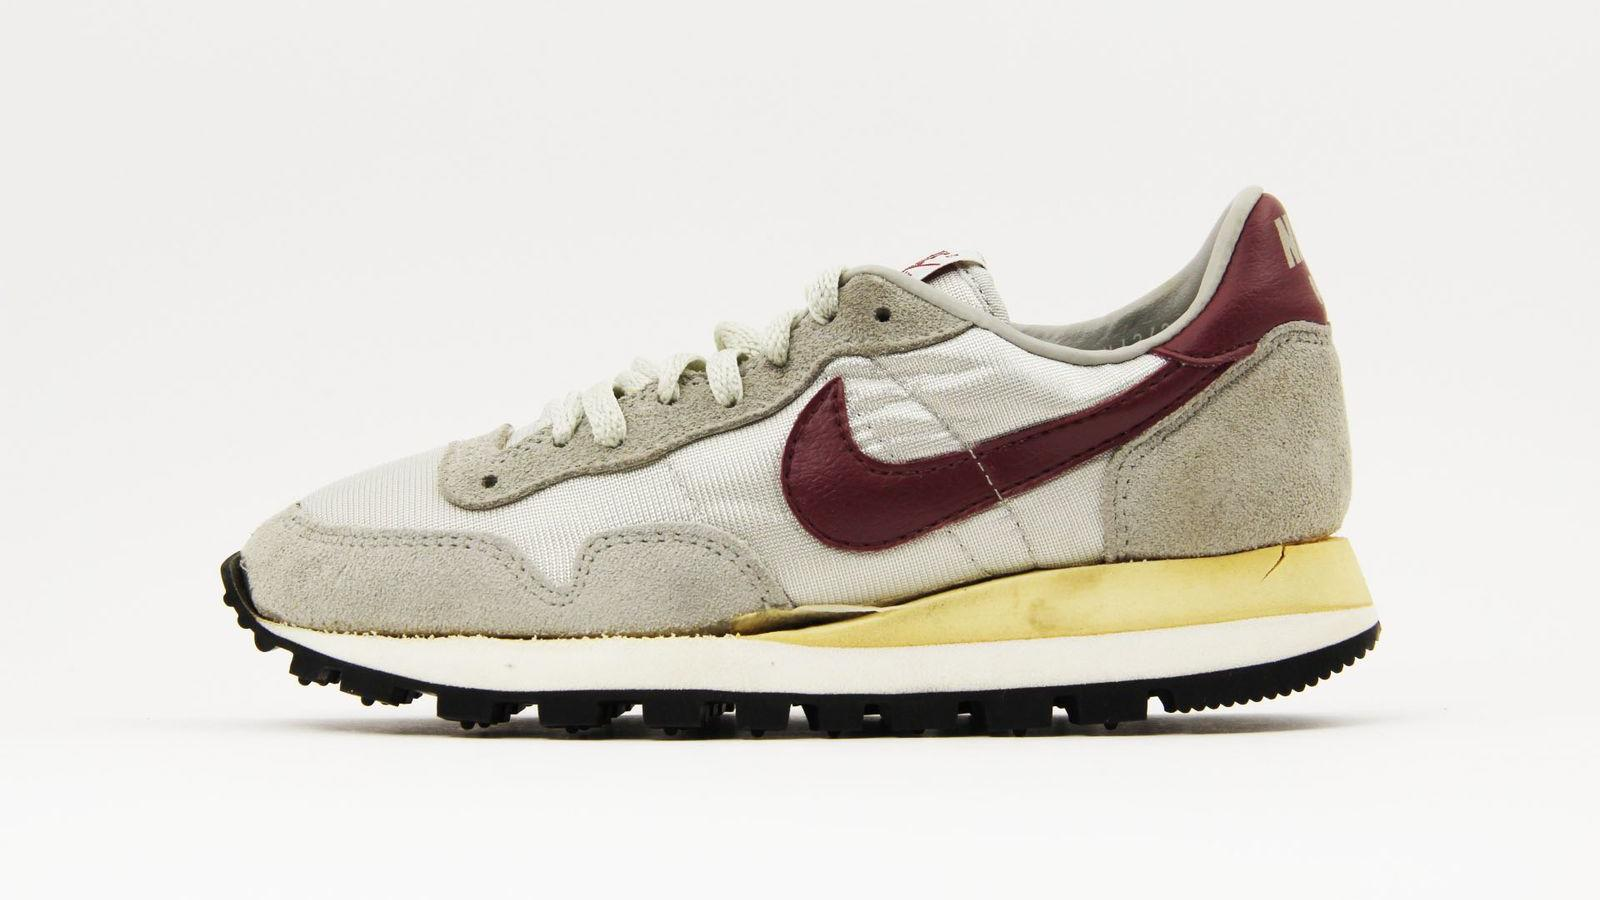 57521da2ab00 10 Things You Didn t Know About the Nike Pegasus - Nike News